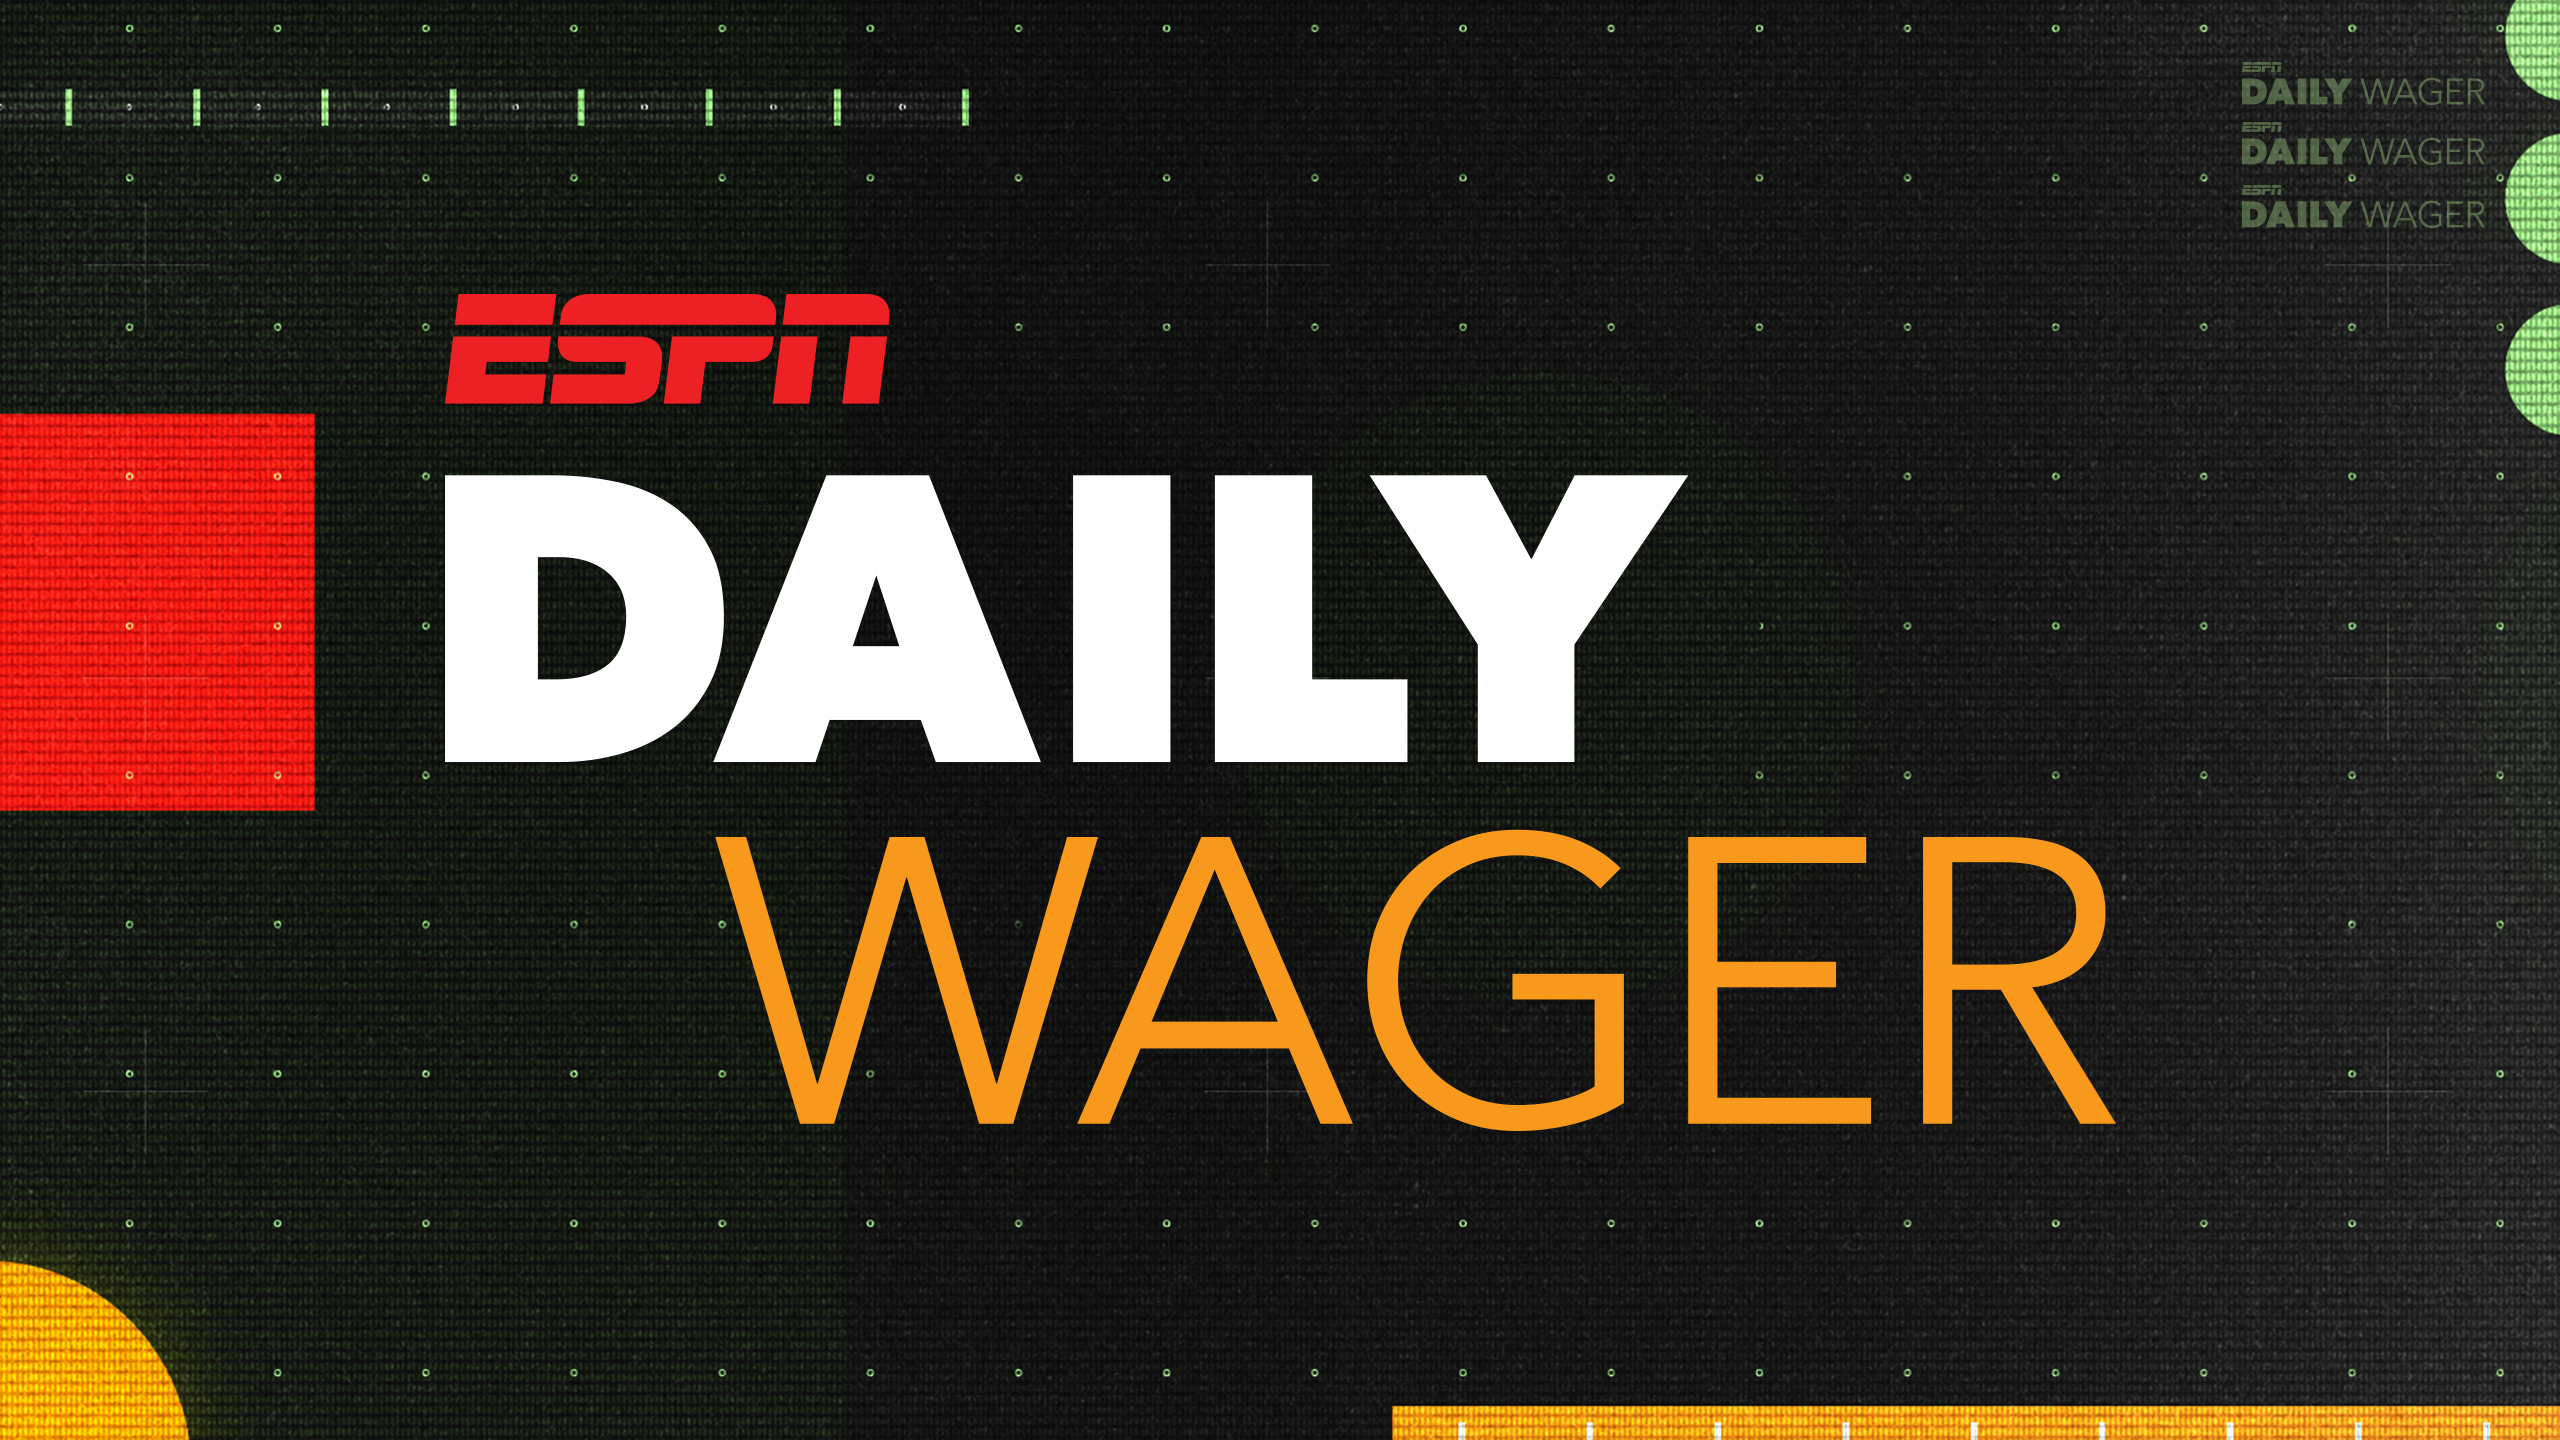 Mon, 3/25 - Daily Wager